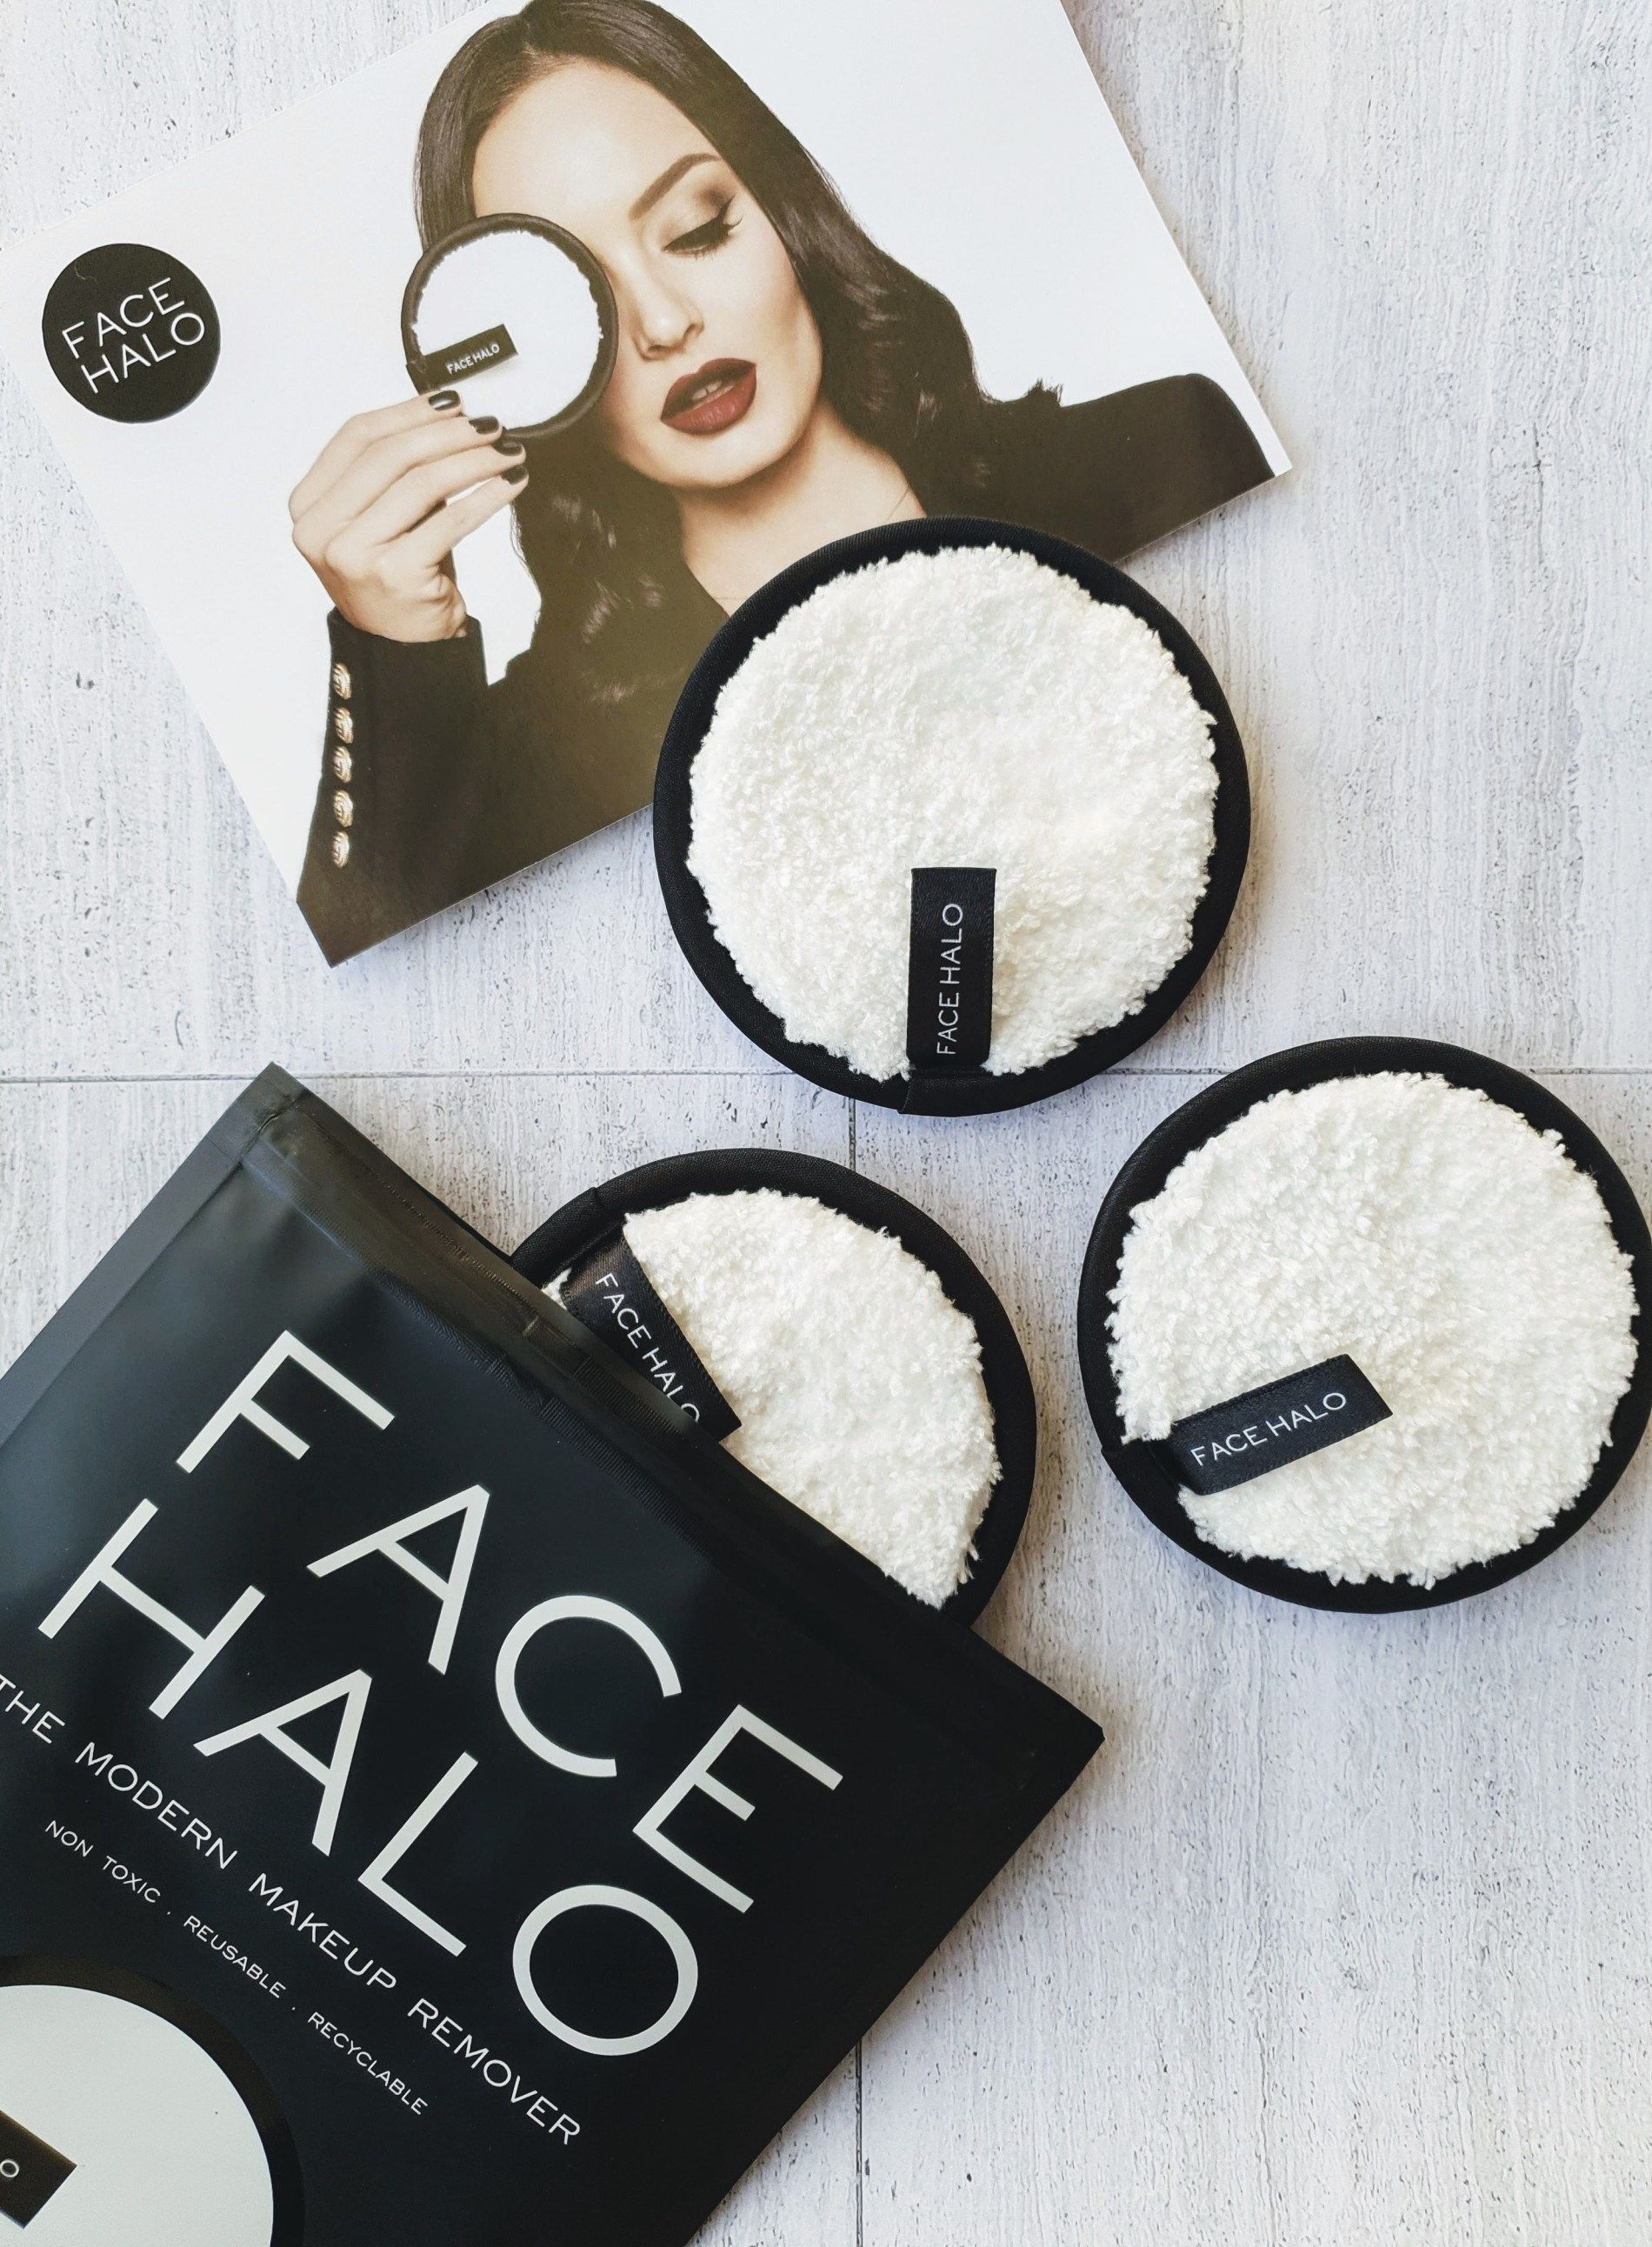 ELE Health & Beauty Alex Reviews Face Halo (can you